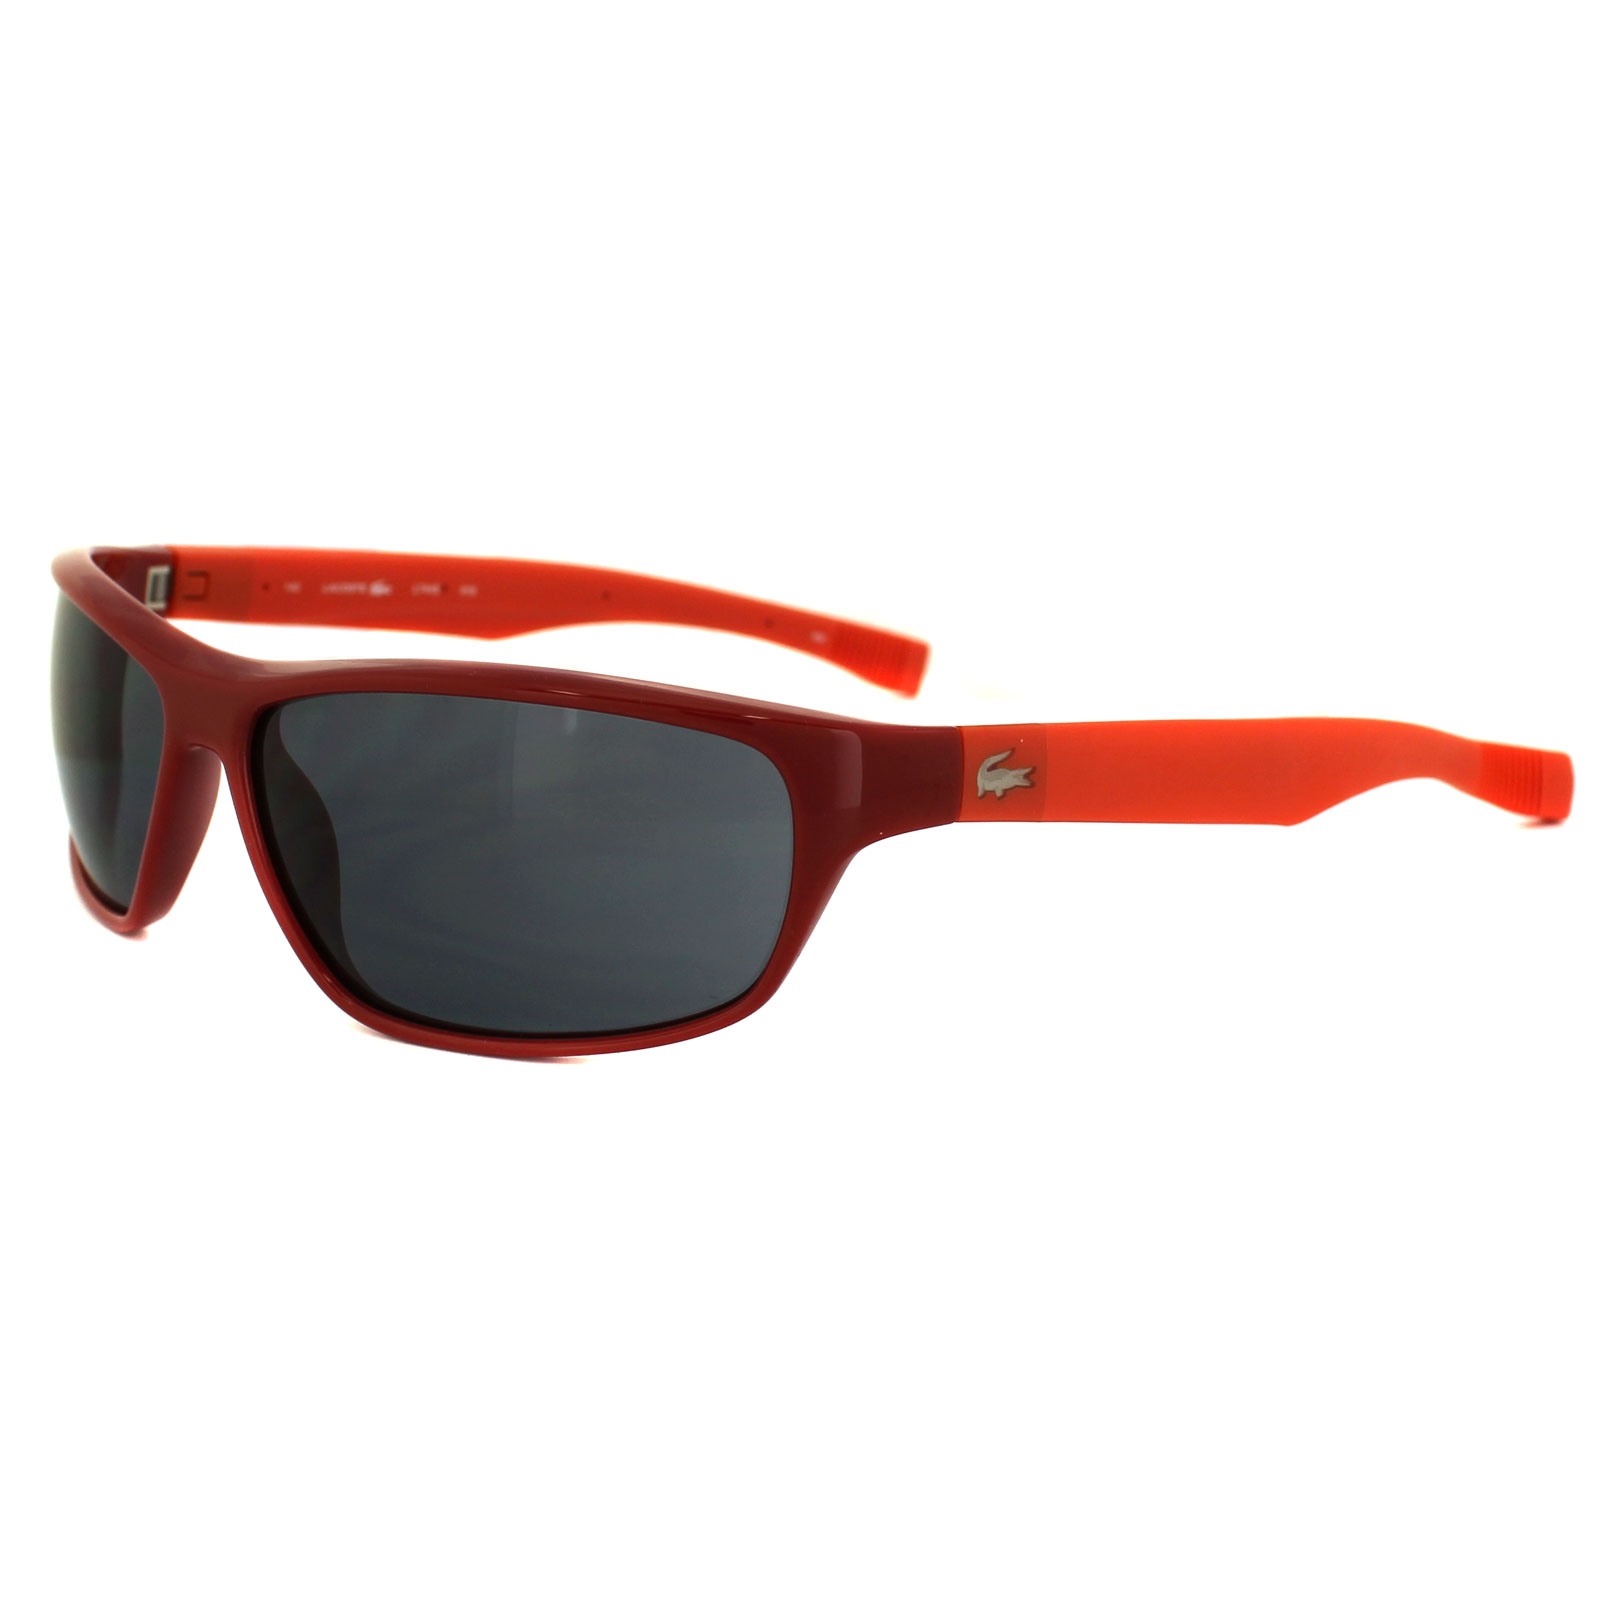 9cbd0e0506f Lacoste Sunglasses L744S 615 Red Grey 886895201865